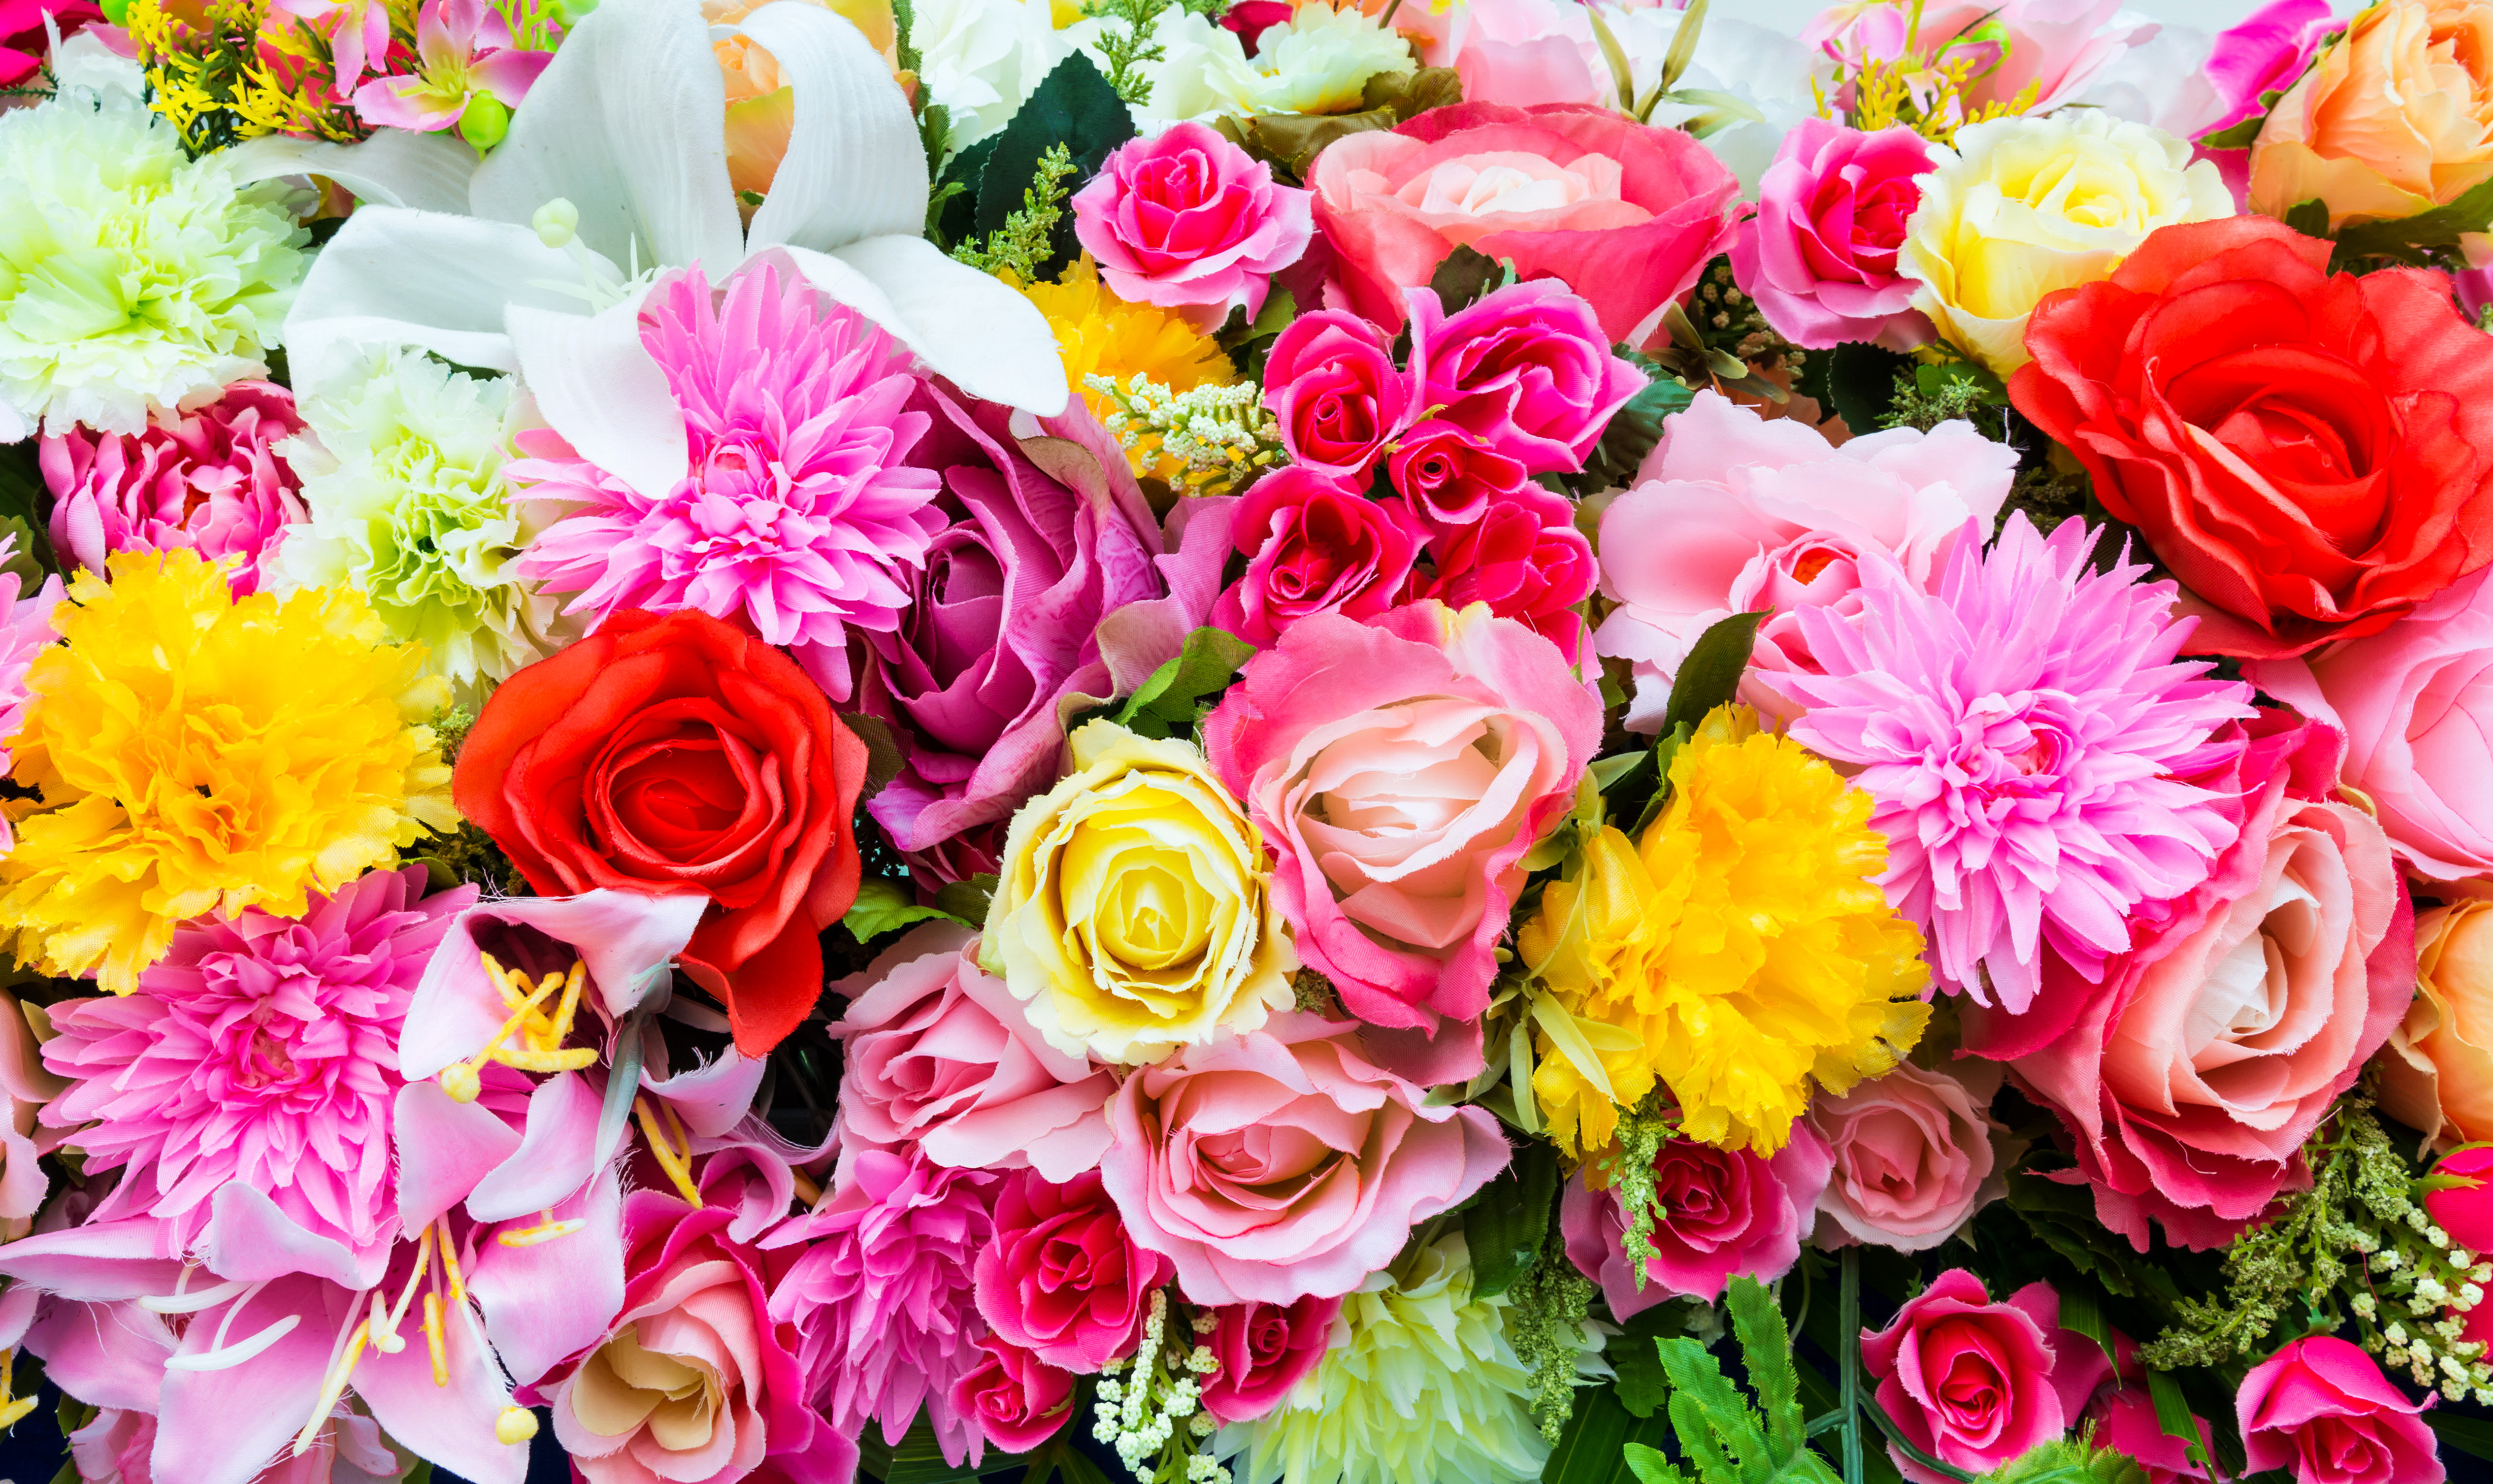 Colorful Flowers 4k Ultra Hd Wallpaper And Hintergrund